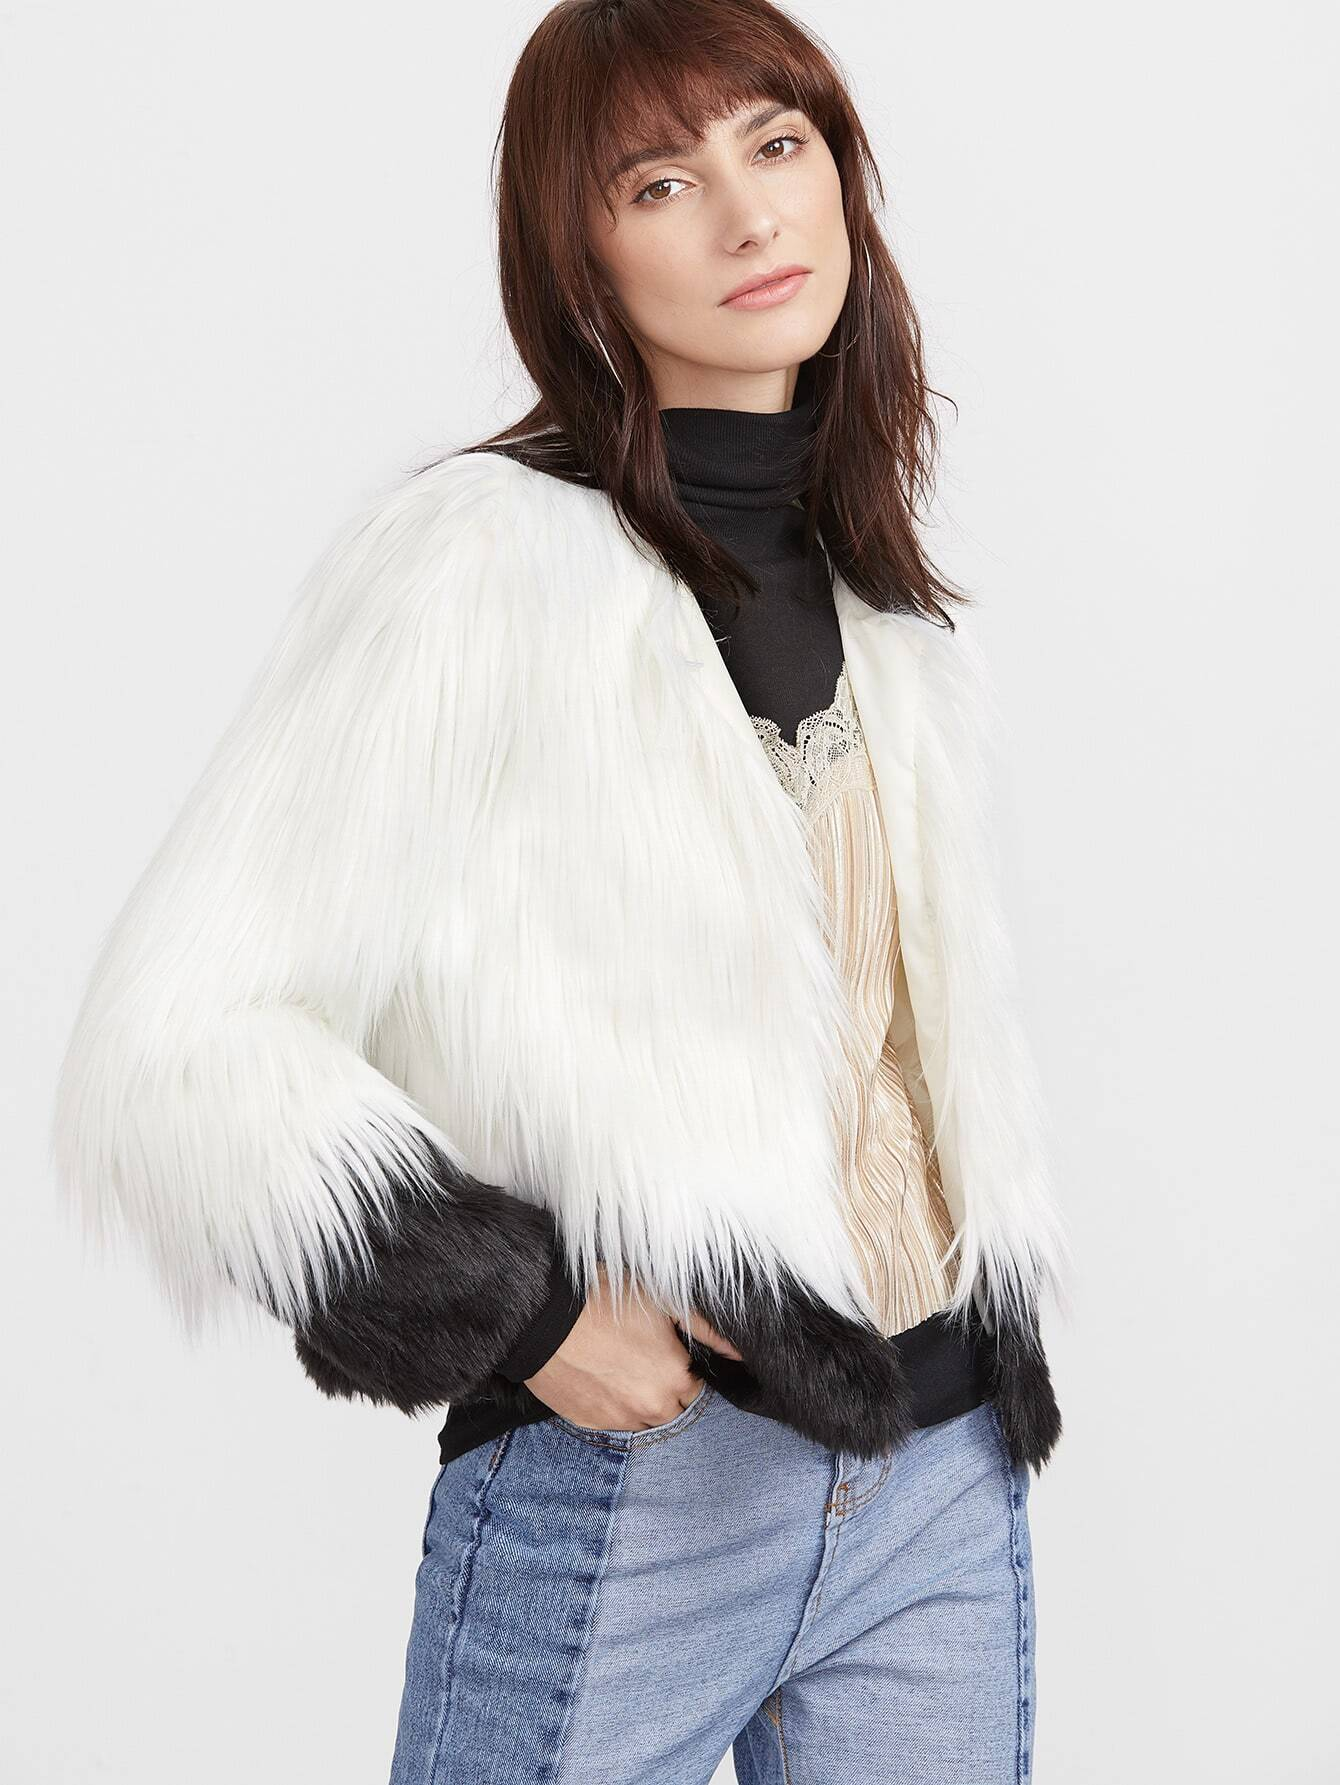 Coats Black and White Faux Fur Collarless Elegant Short Winter Color Block Fabric has no stretch Long Sleeve YES Outerwear.